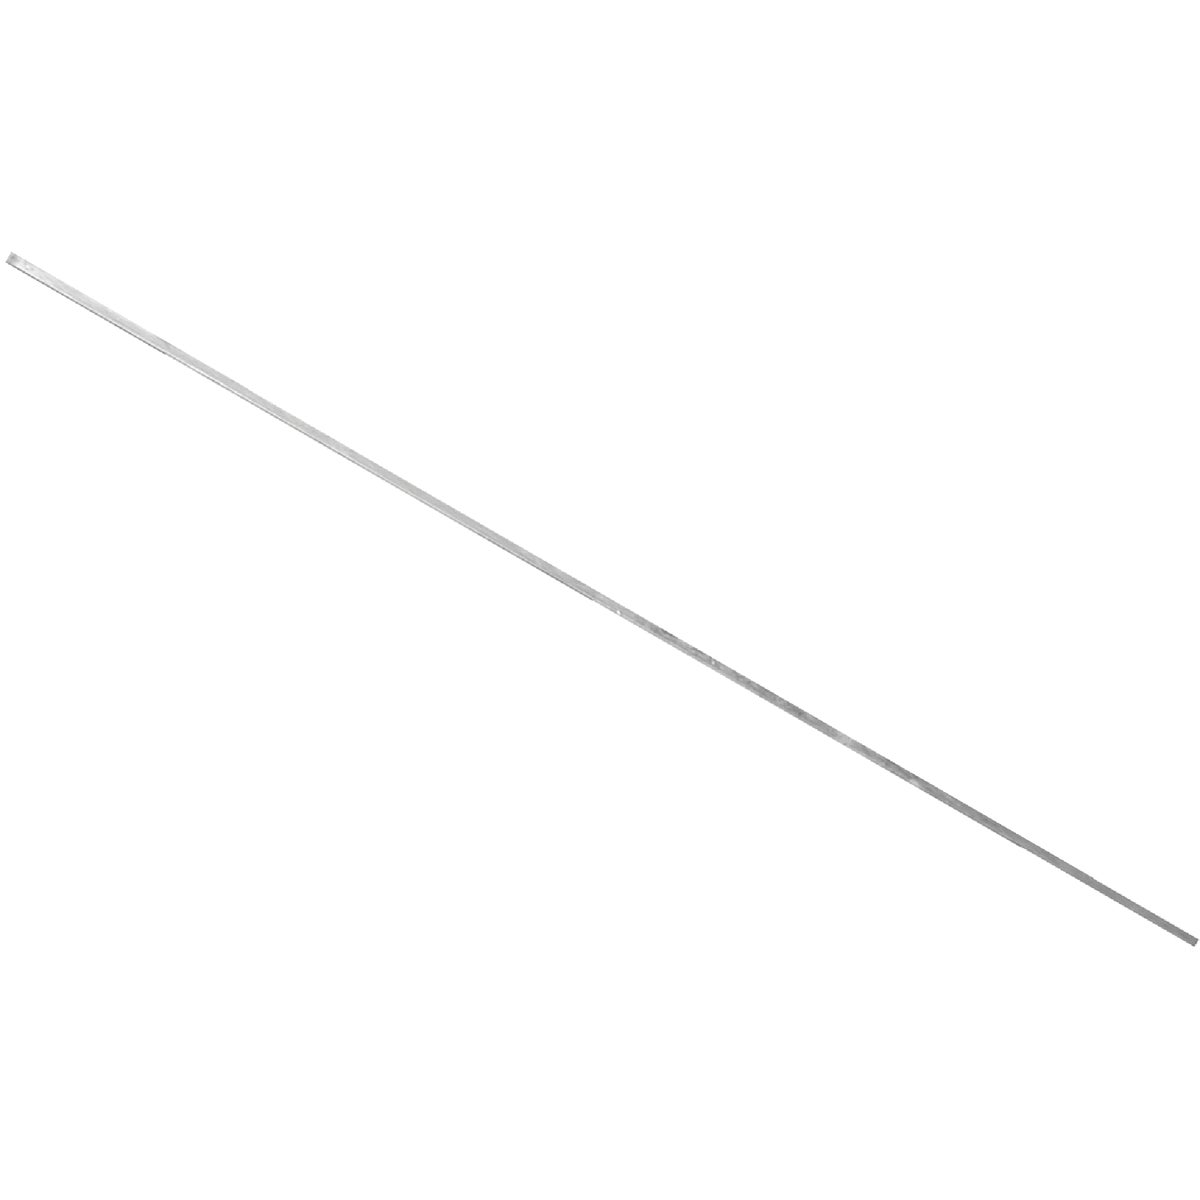 "60"" TENSION BAR - 328514DPT by Midwest Air Tech"